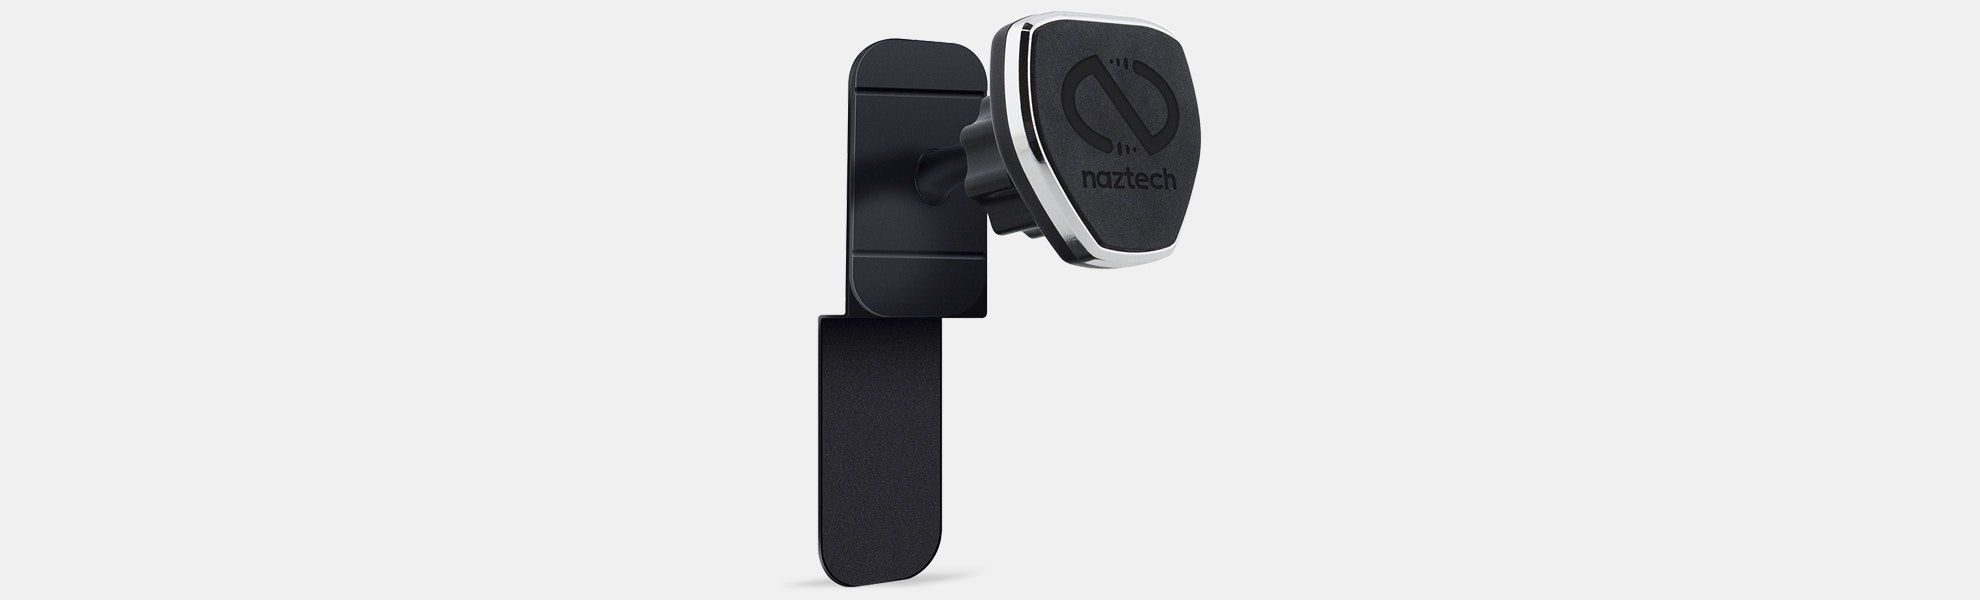 Naztech MagBuddy Universal Magnetic In-Flight Mount